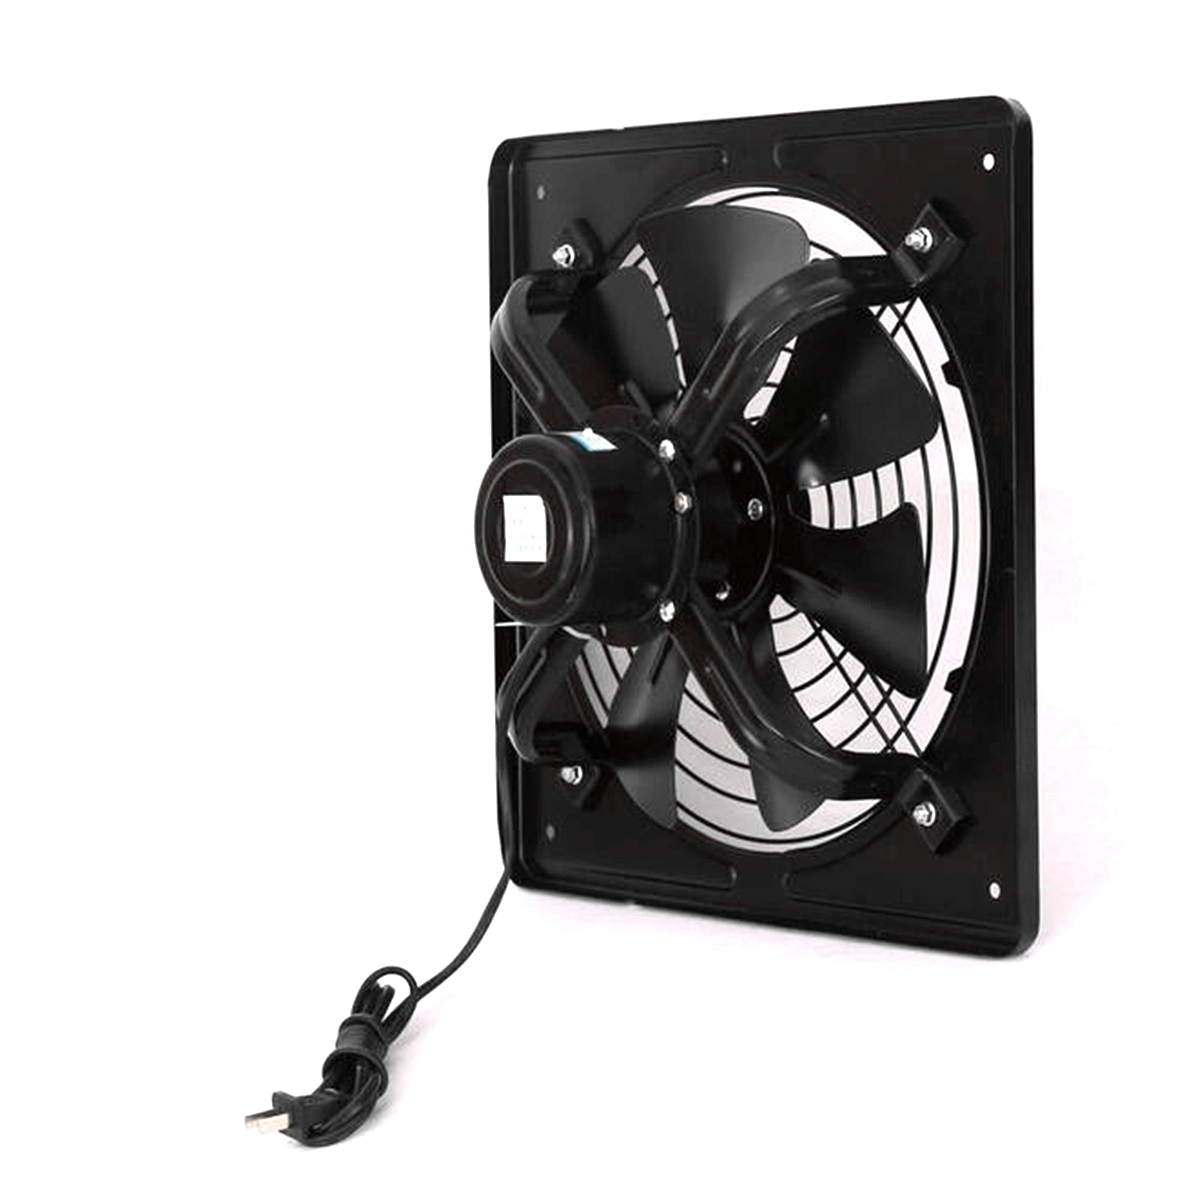 220V 60W Industrial Ventilation Extractor Metal Axial Exhaust Air Blower Fan